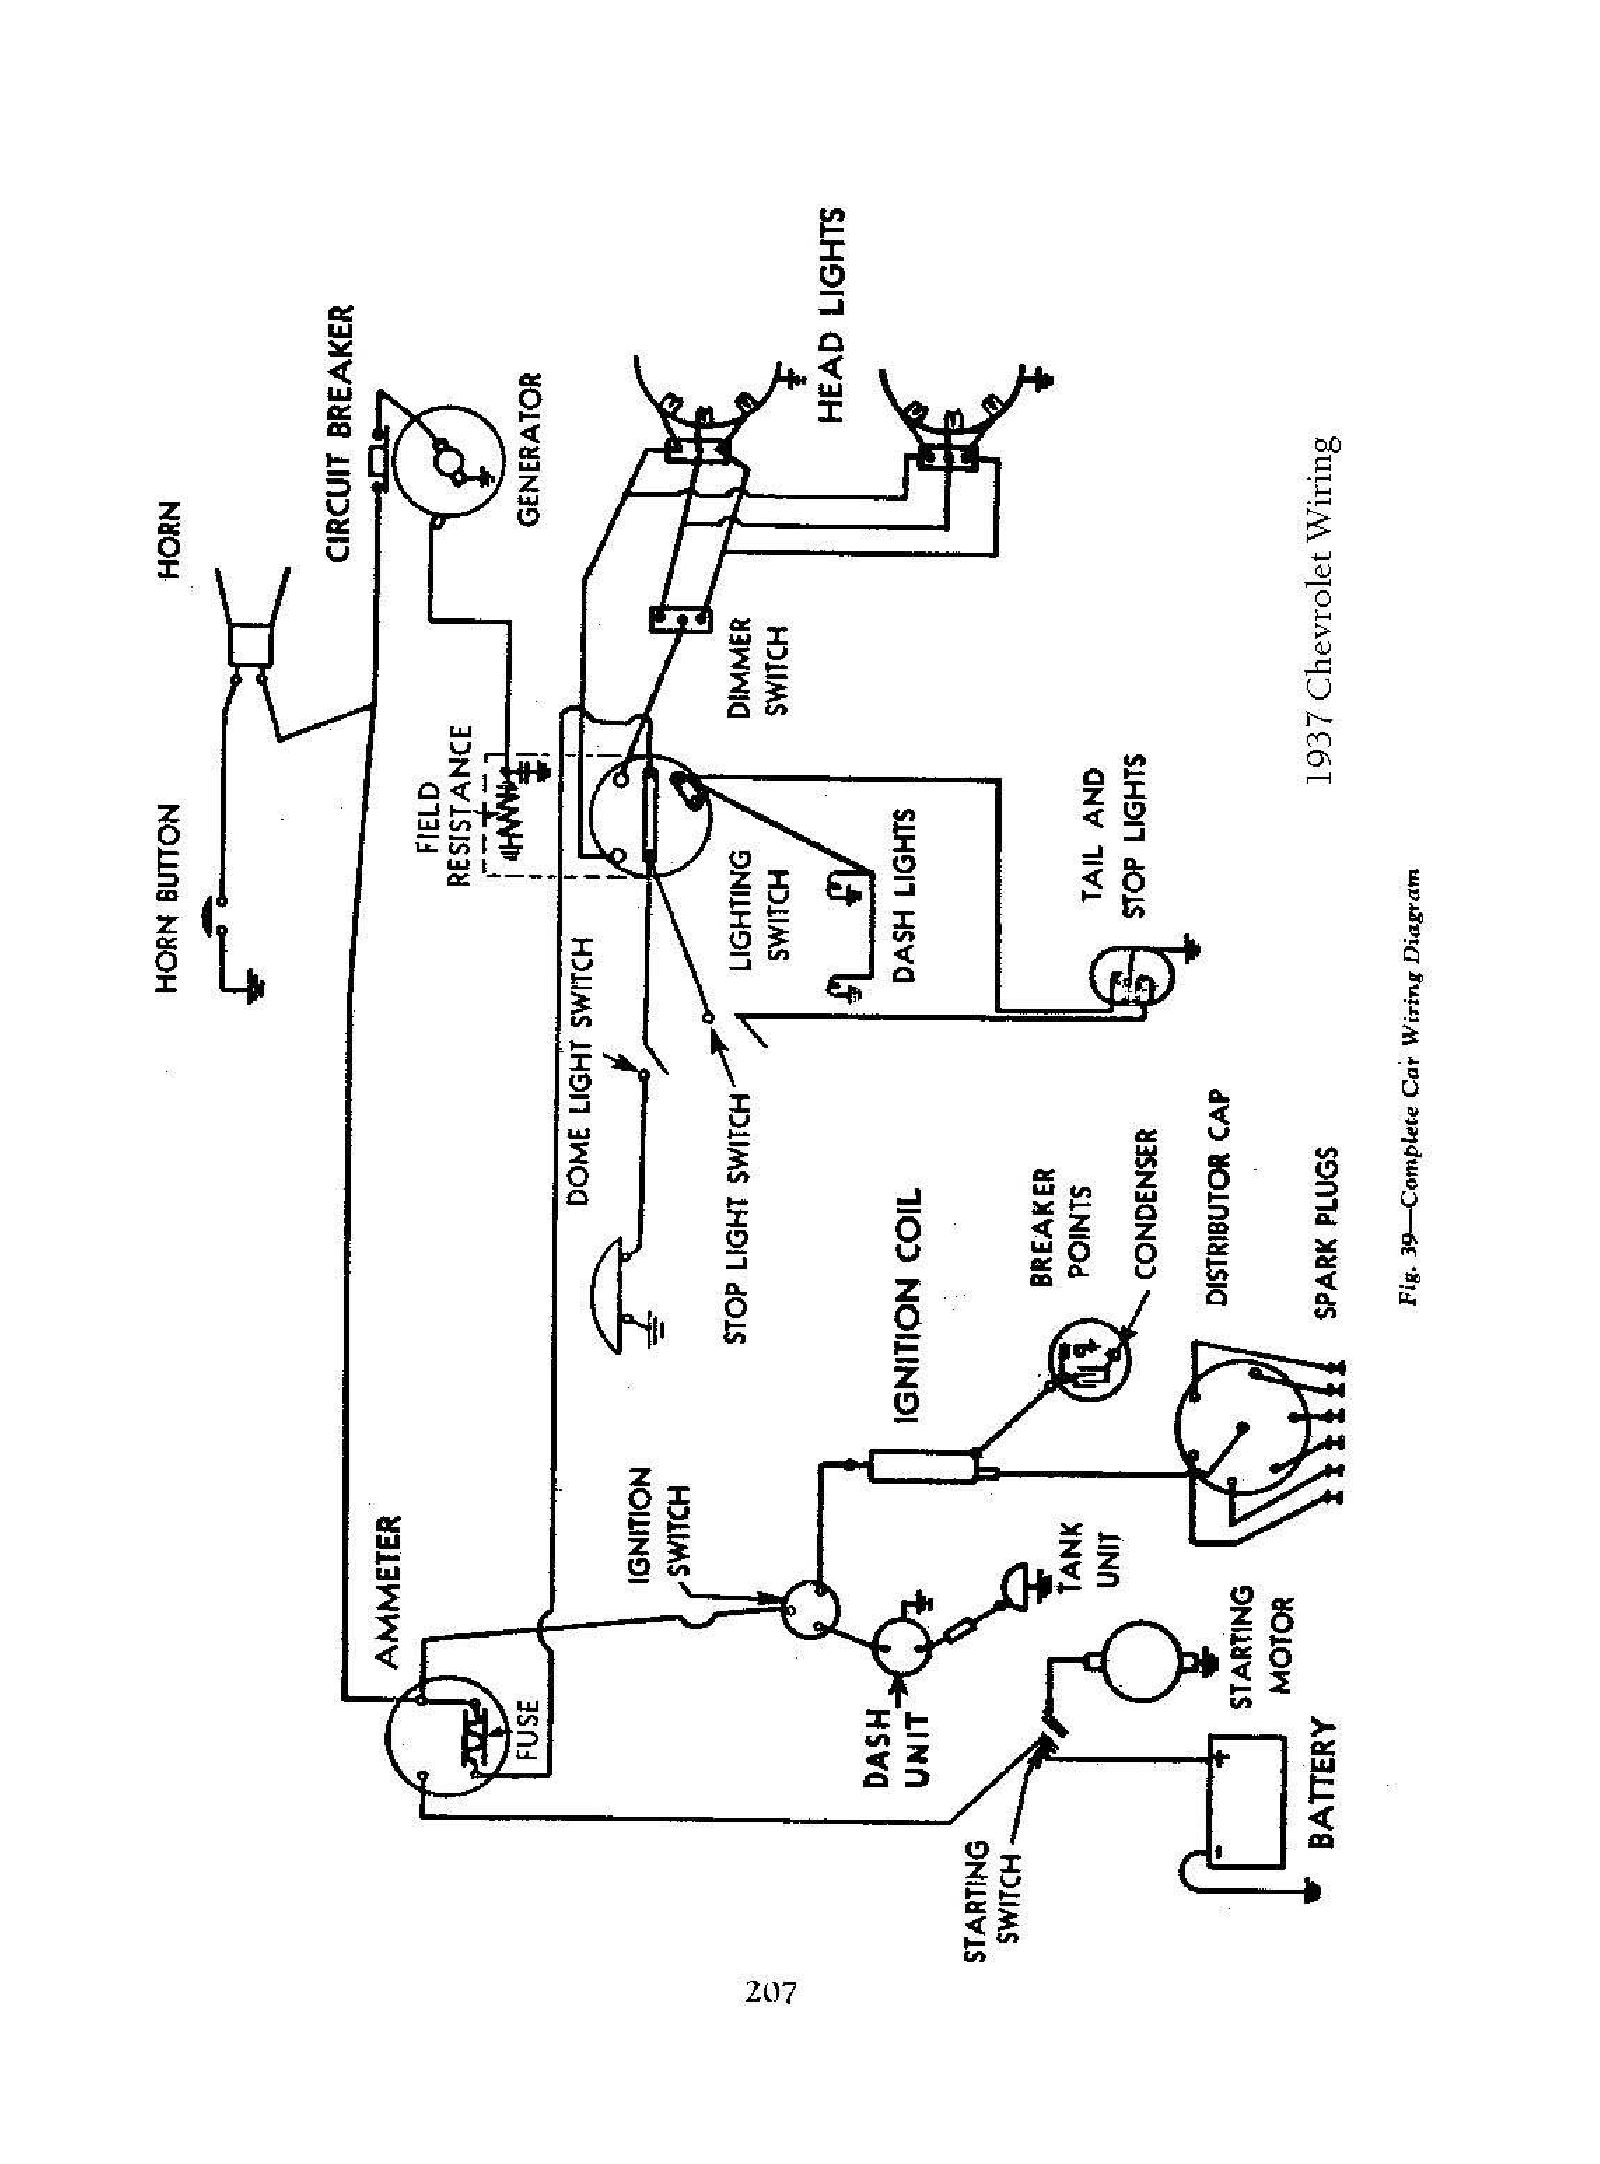 1931 model a wiring schematic